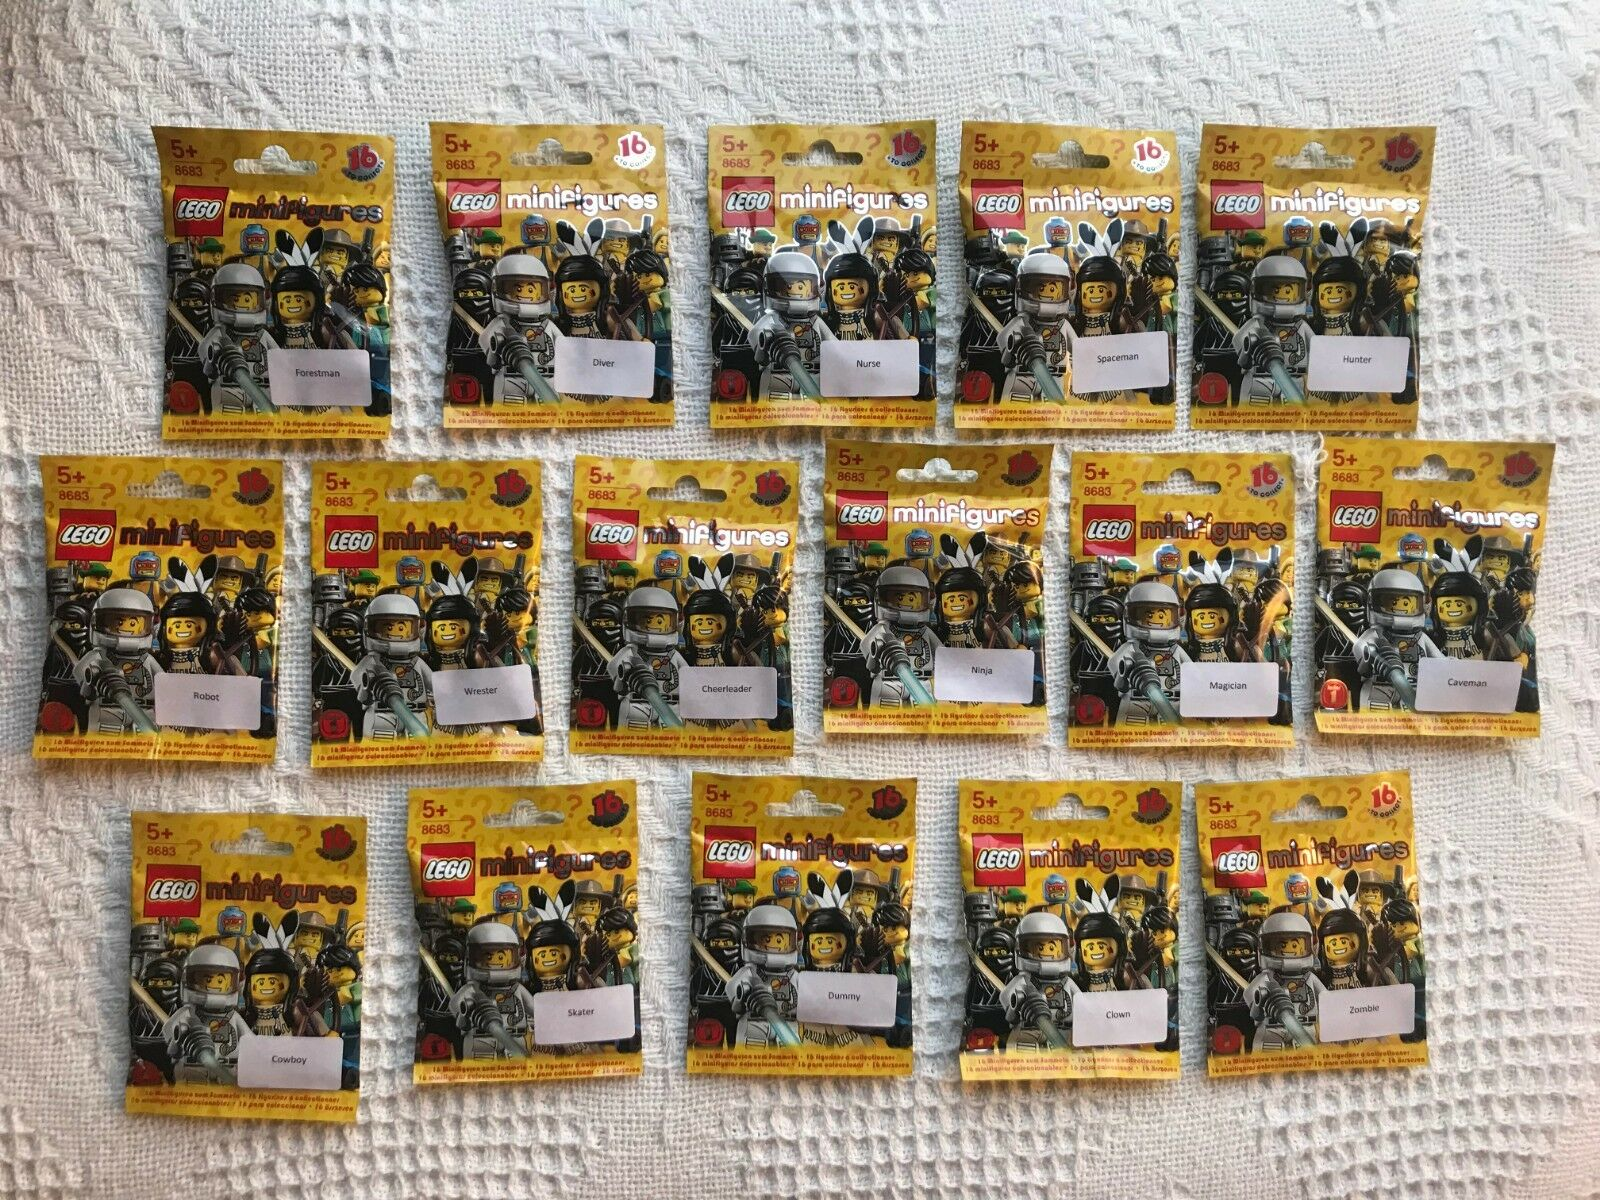 LEGO 8683 Collectable Minifigures Series 1 Complete Set - Brand New Sealed